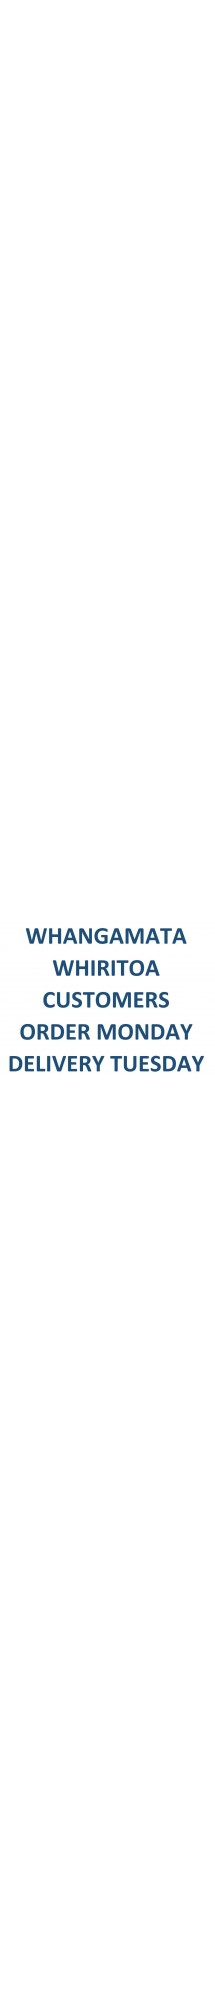 Whangamata Whiritoa Order Monday Delivery Tuesday